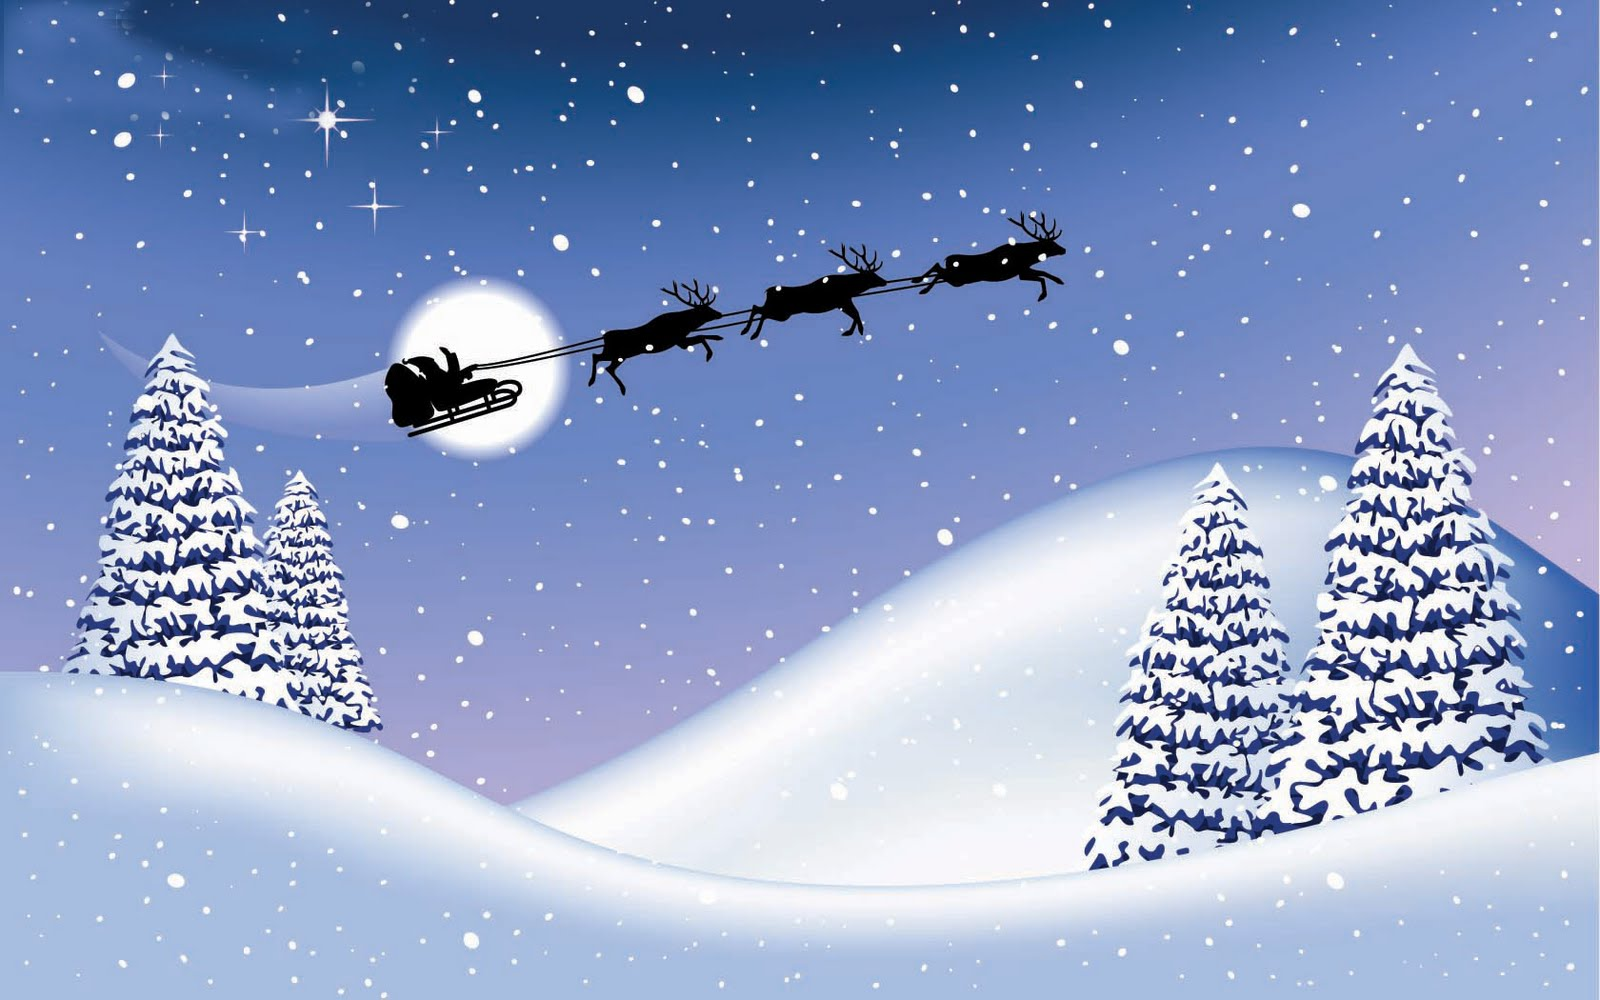 Christmas wallpapers - Free christmas wallpaper backgrounds ...